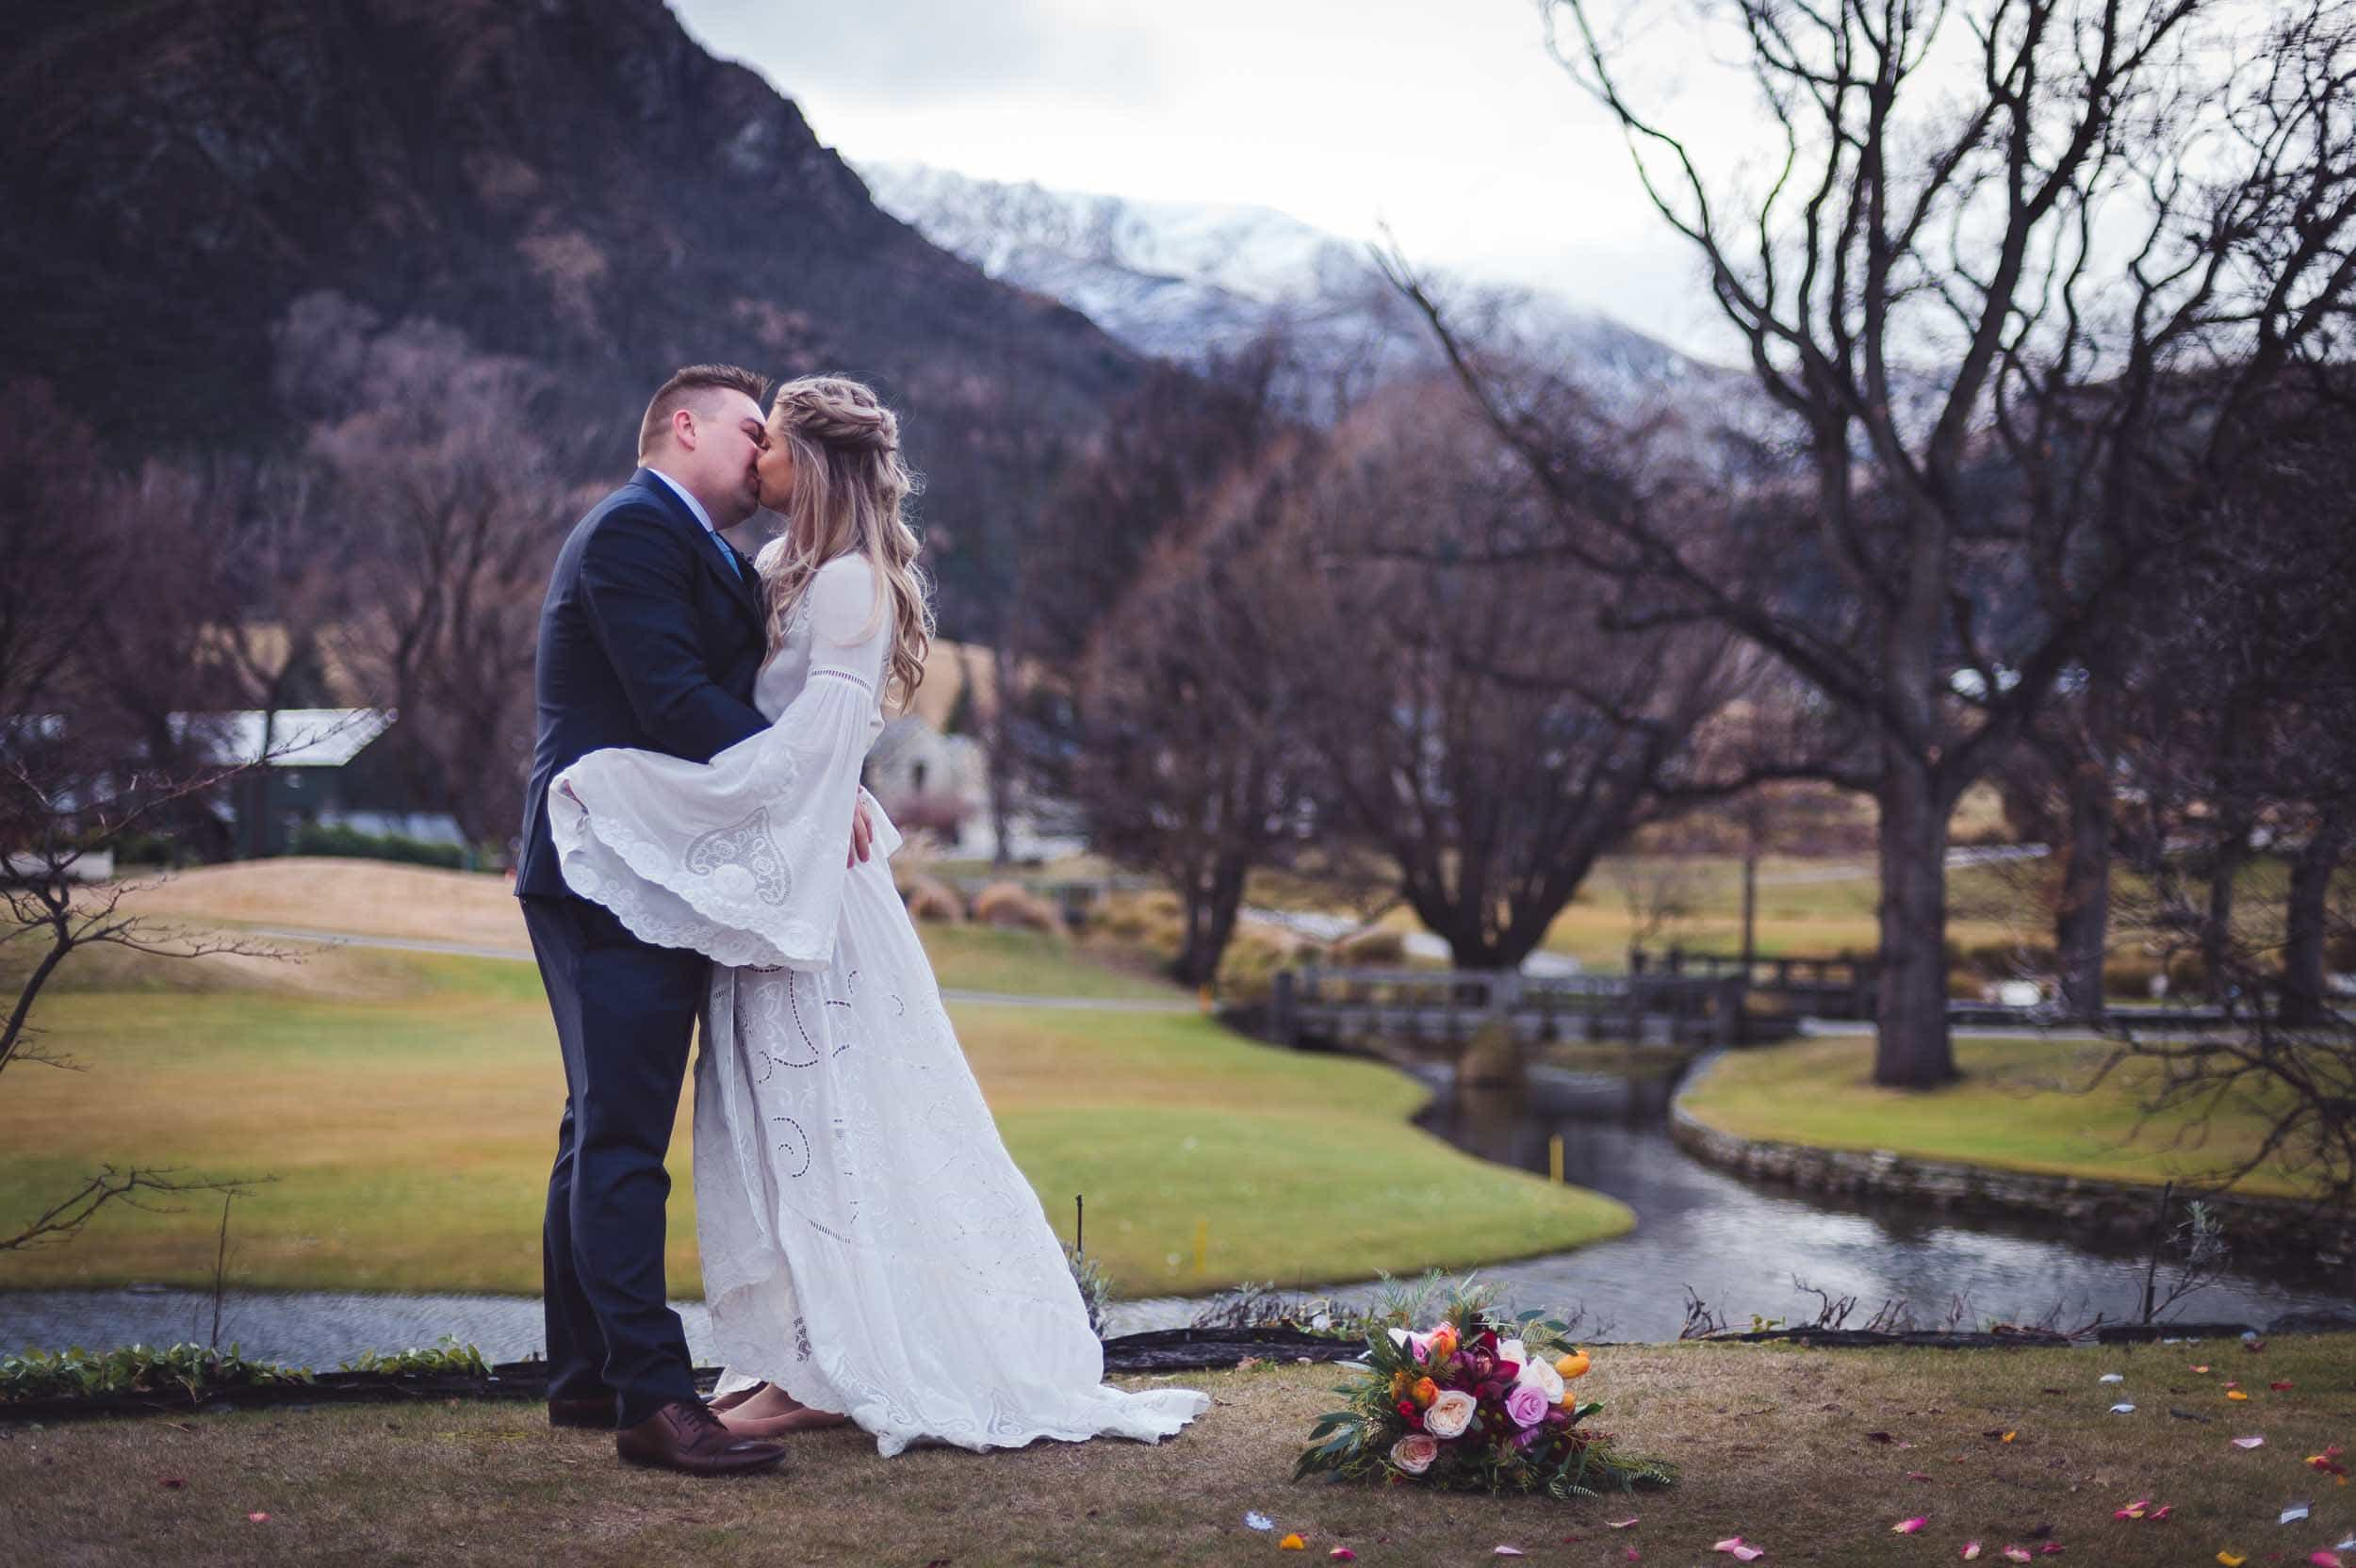 Millbrook resort winter wedding secret garden ceremony bride groom kiss